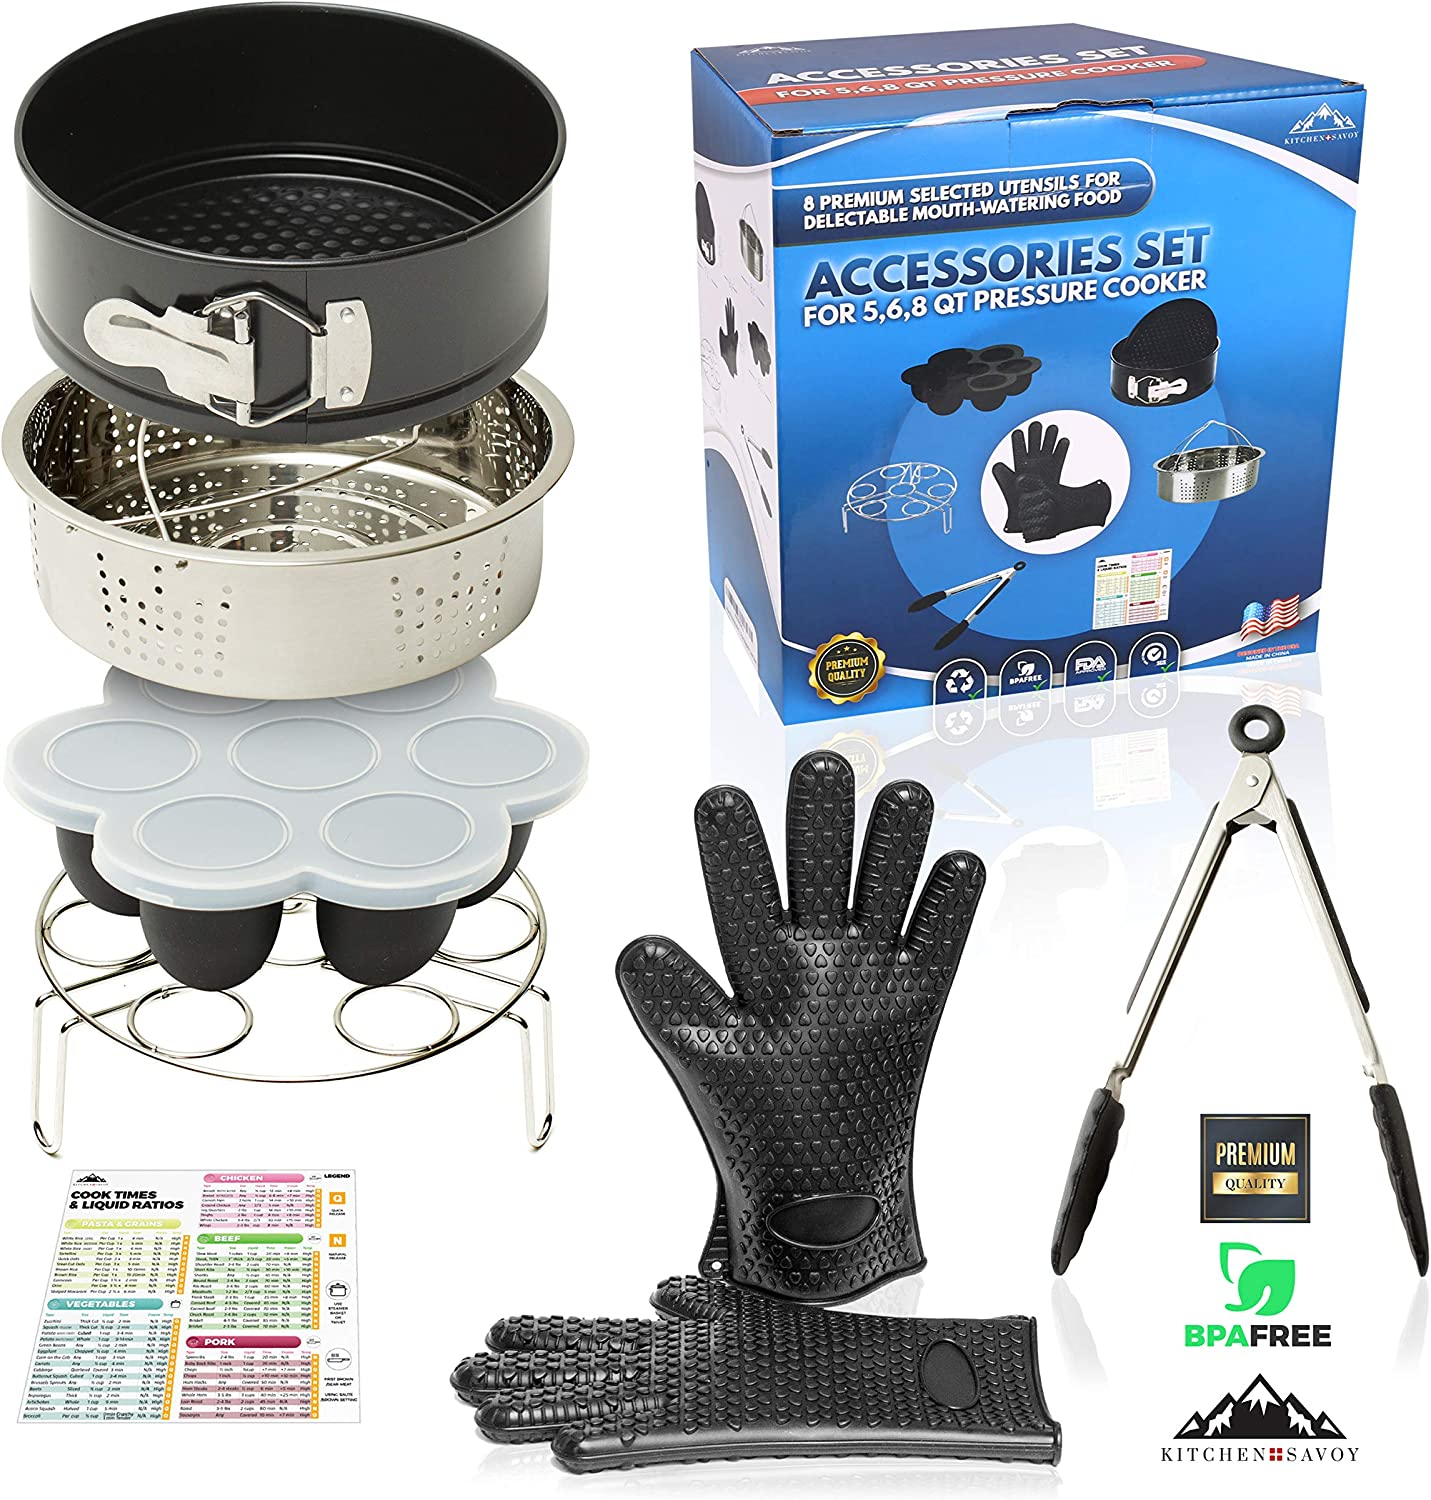 Instant Pot Accessories Set – Fits 5,6,8qt Pressure Cookers - Steamer Basket - Cake Pan - Silicone Gloves - Egg Bites Mold – Kitchen Tongs –– Cook Times Magnetic Cheat Sheet